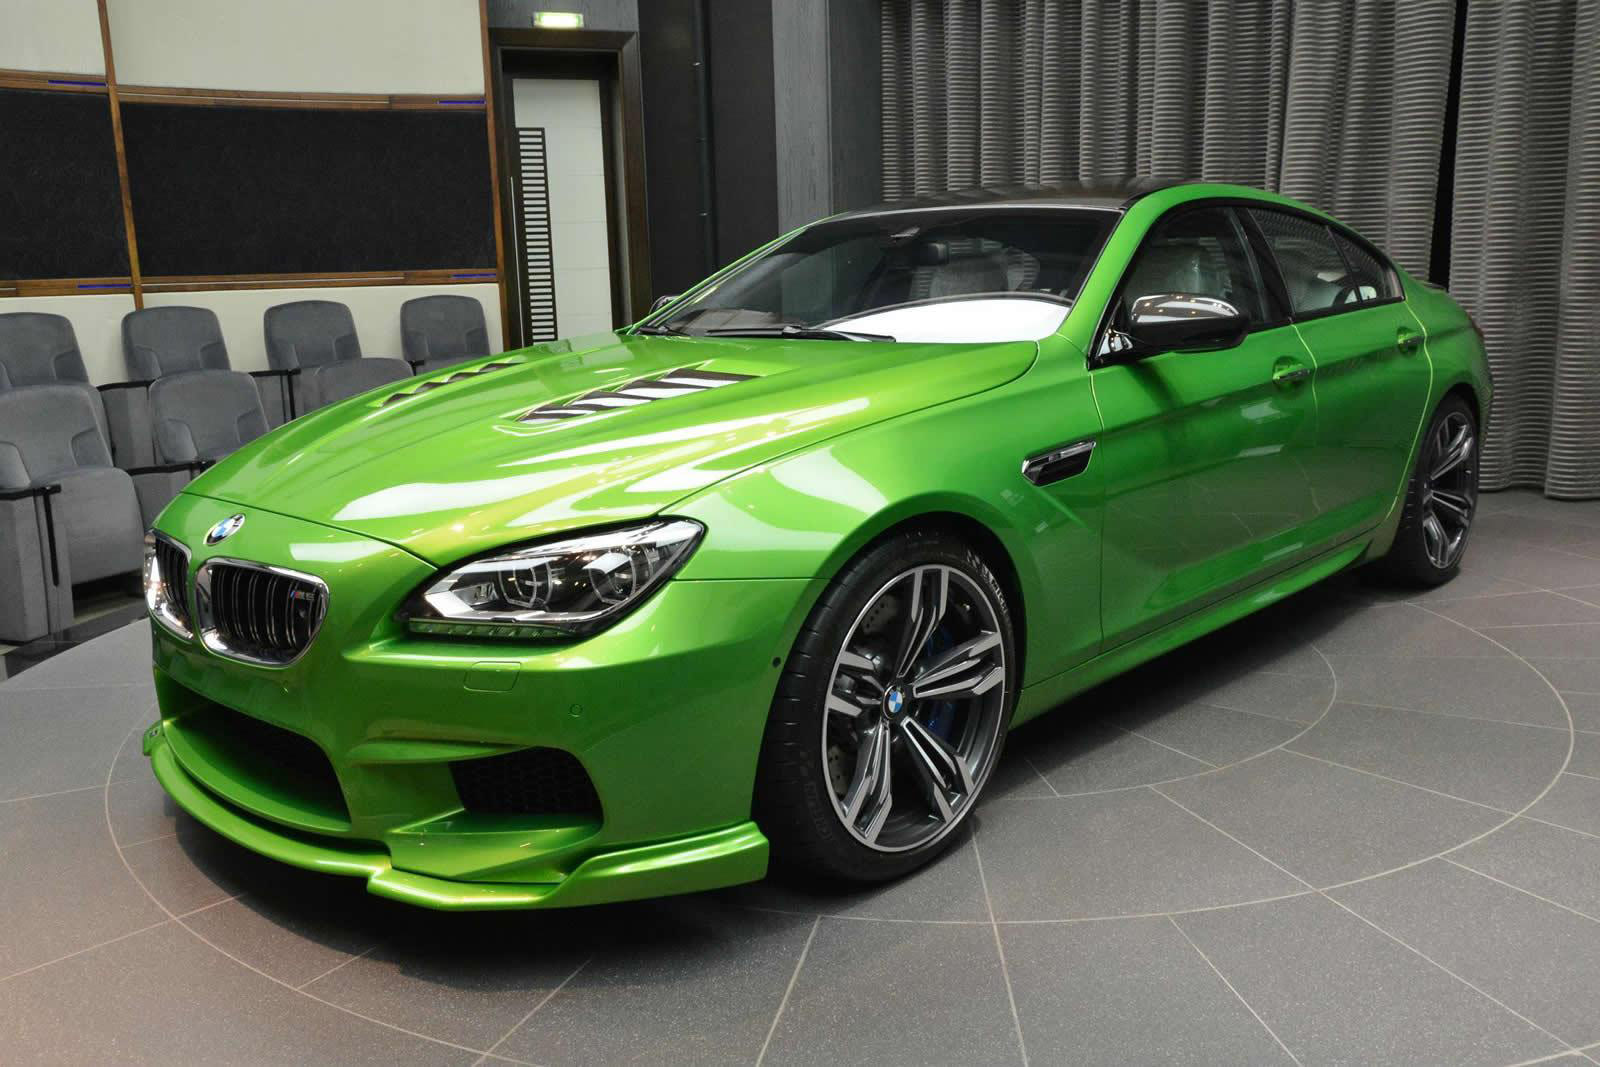 Car Paint Job Cost >> New Individualized Java Green BMW M6 Gran Coupe in Abu Dhabi